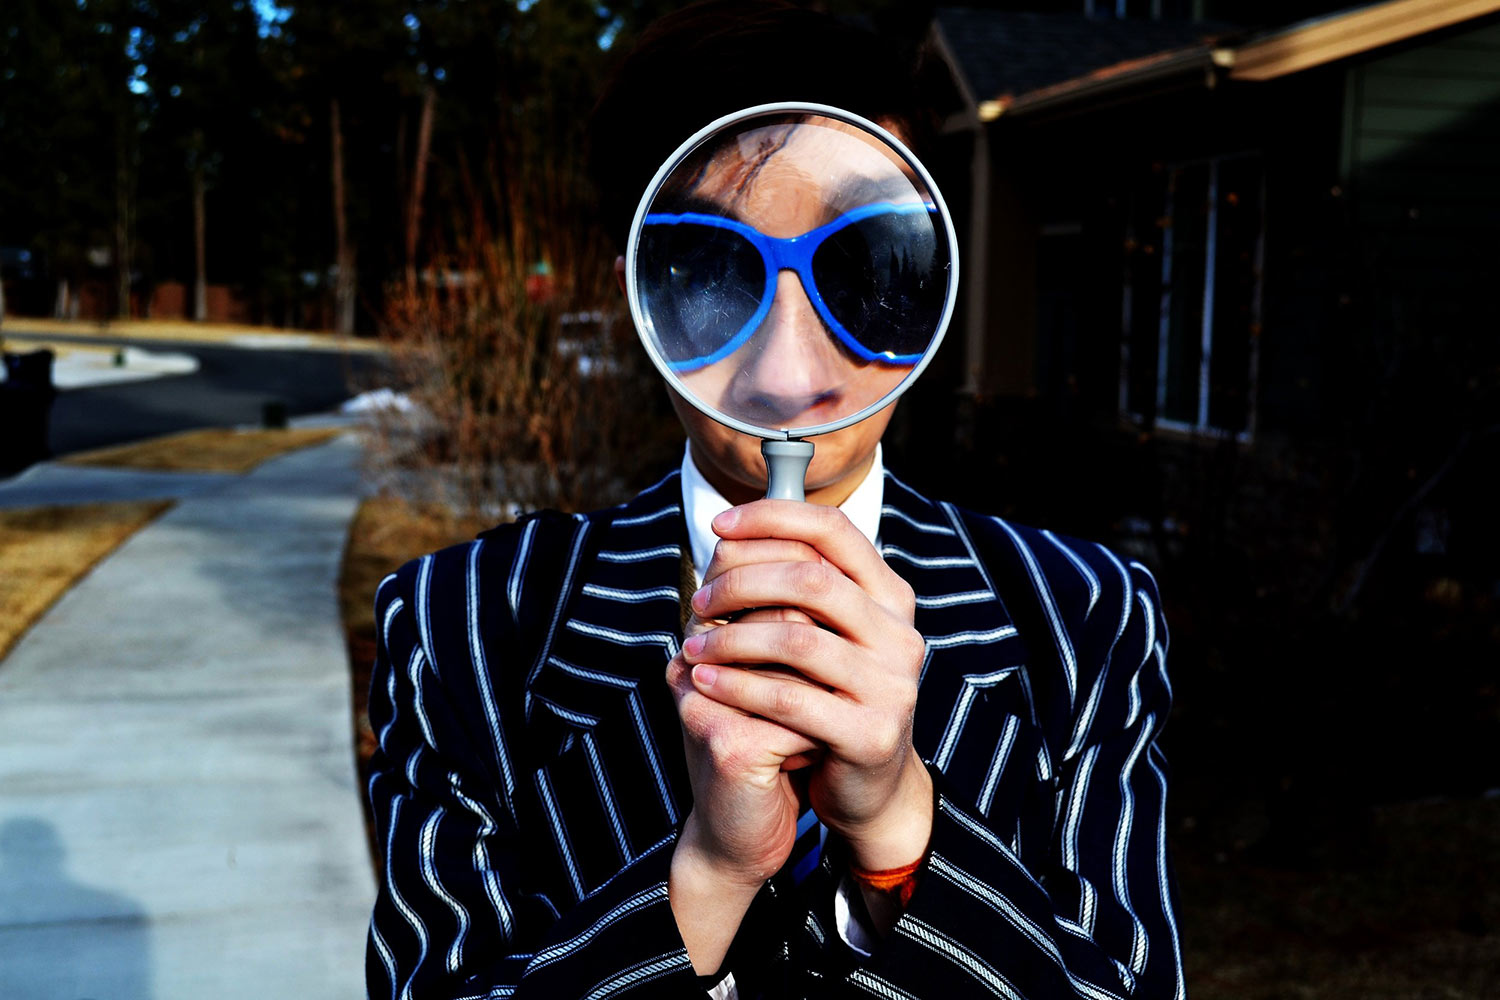 man-with-magnifying-glass